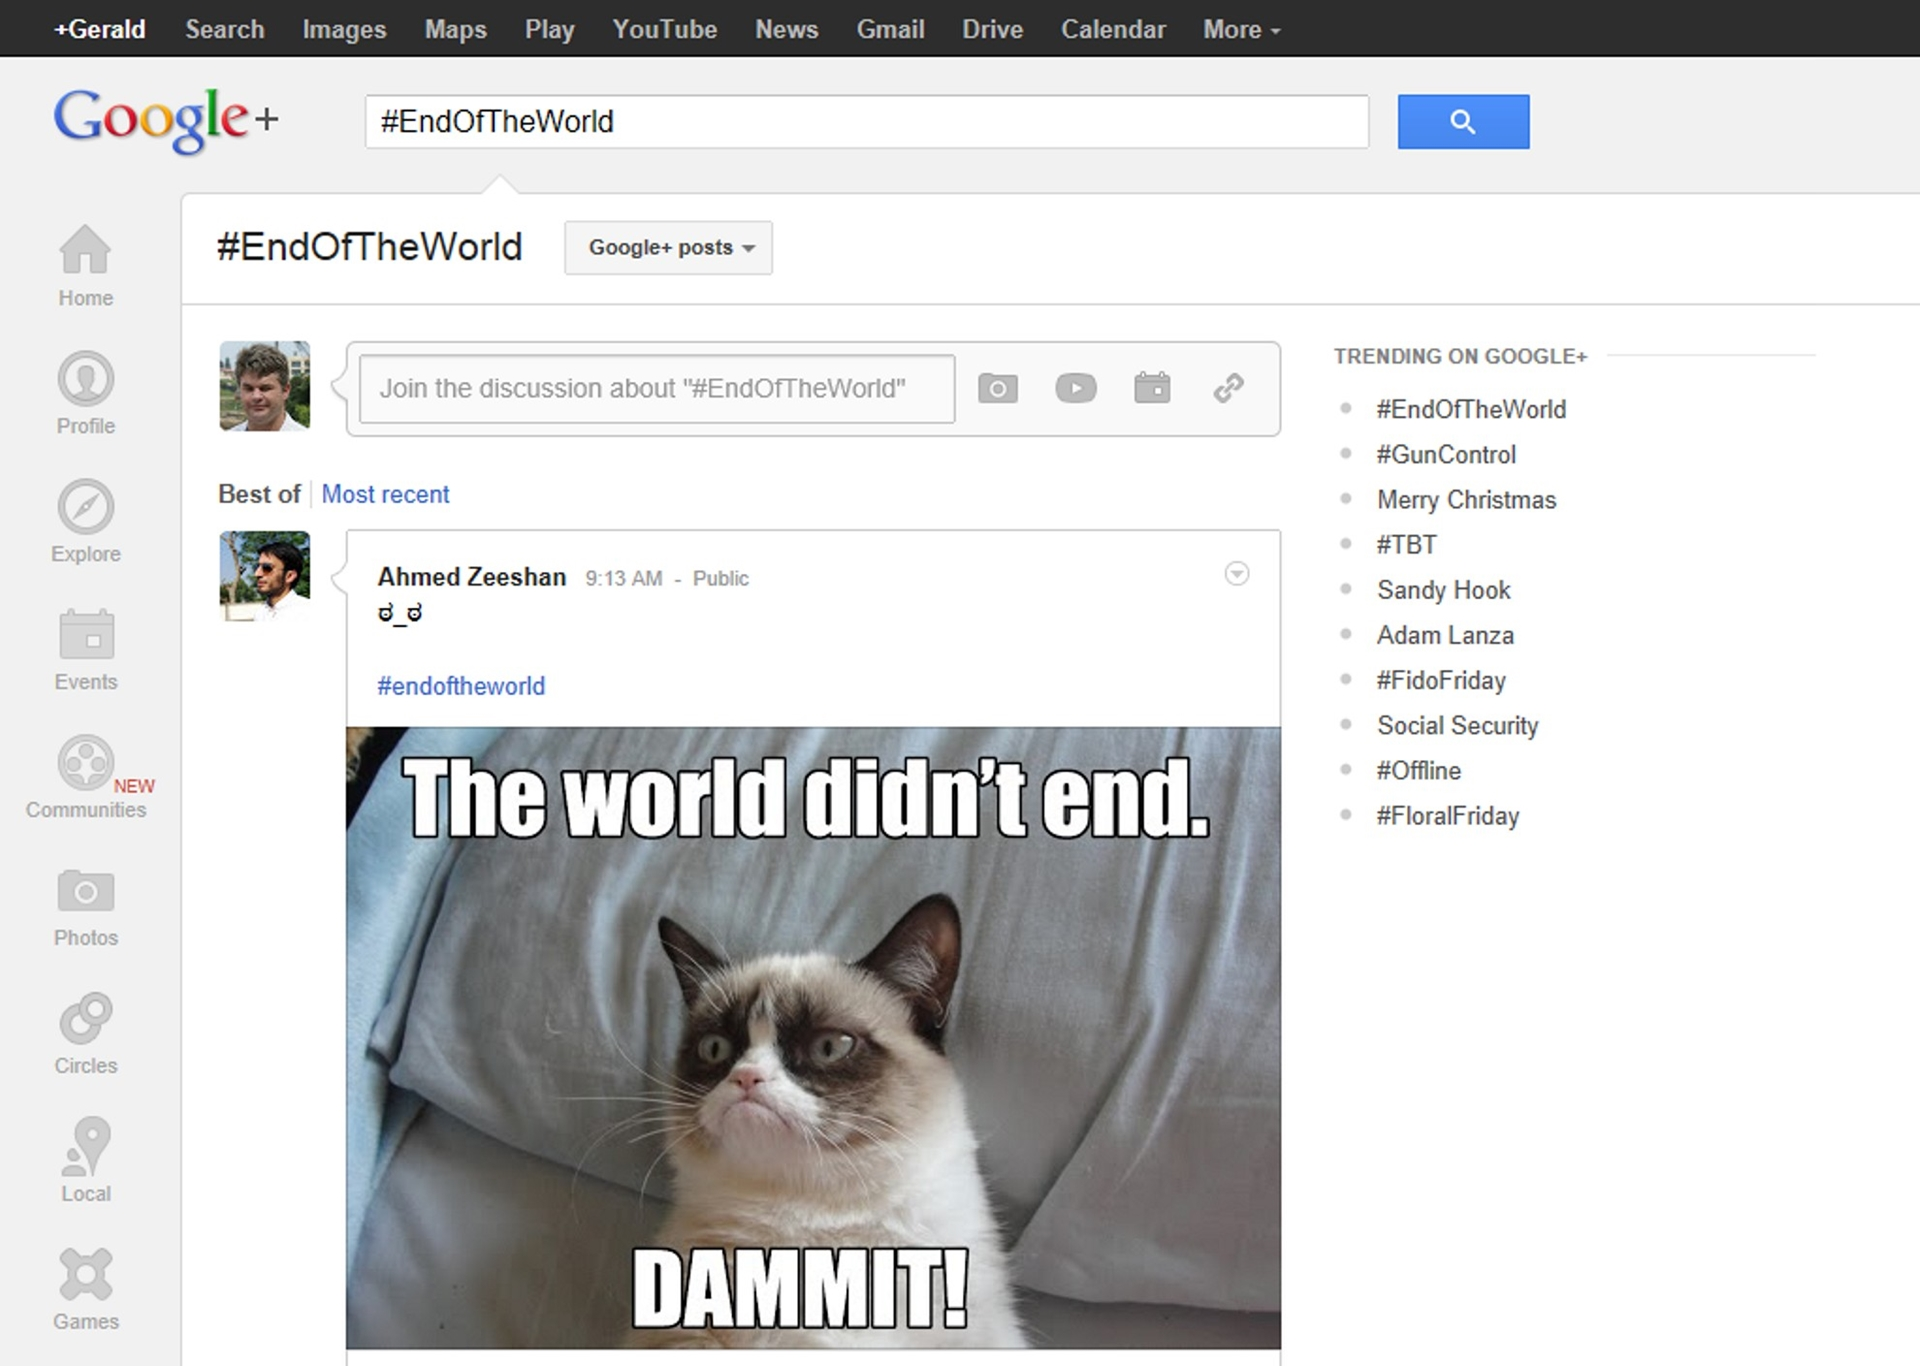 Google+ end of the world